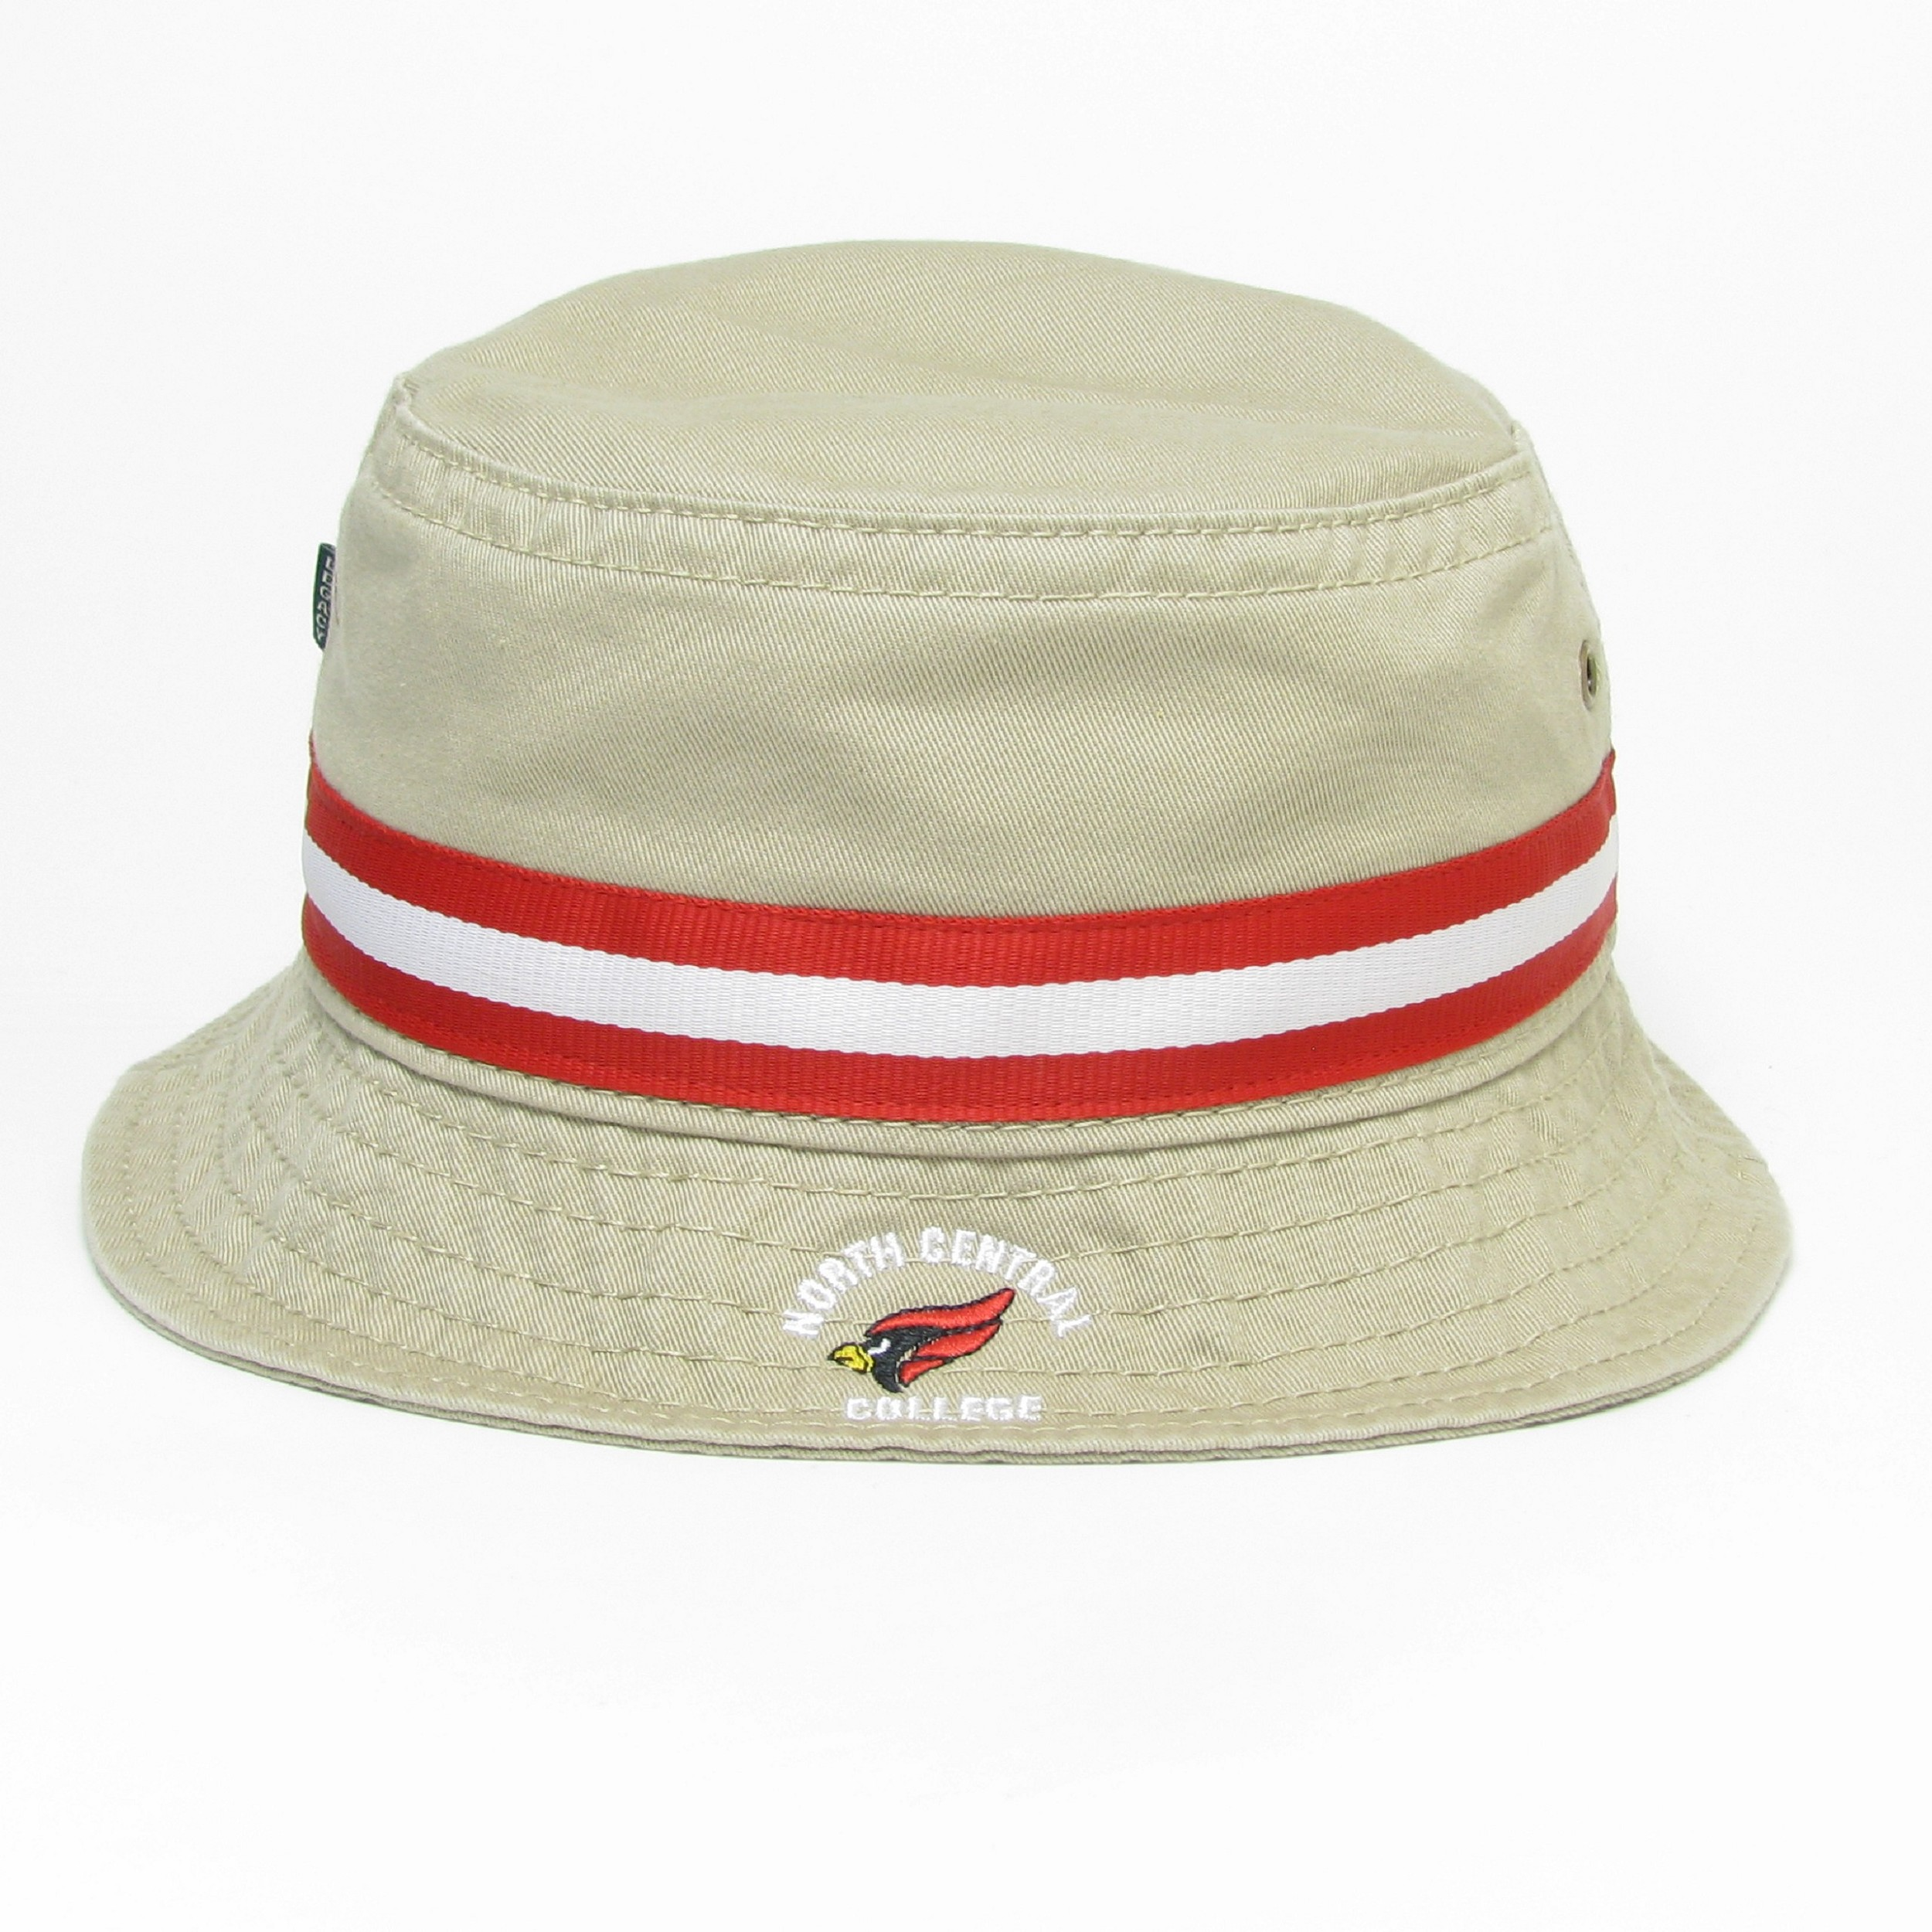 Image for the Bucket Hat by Legacy product